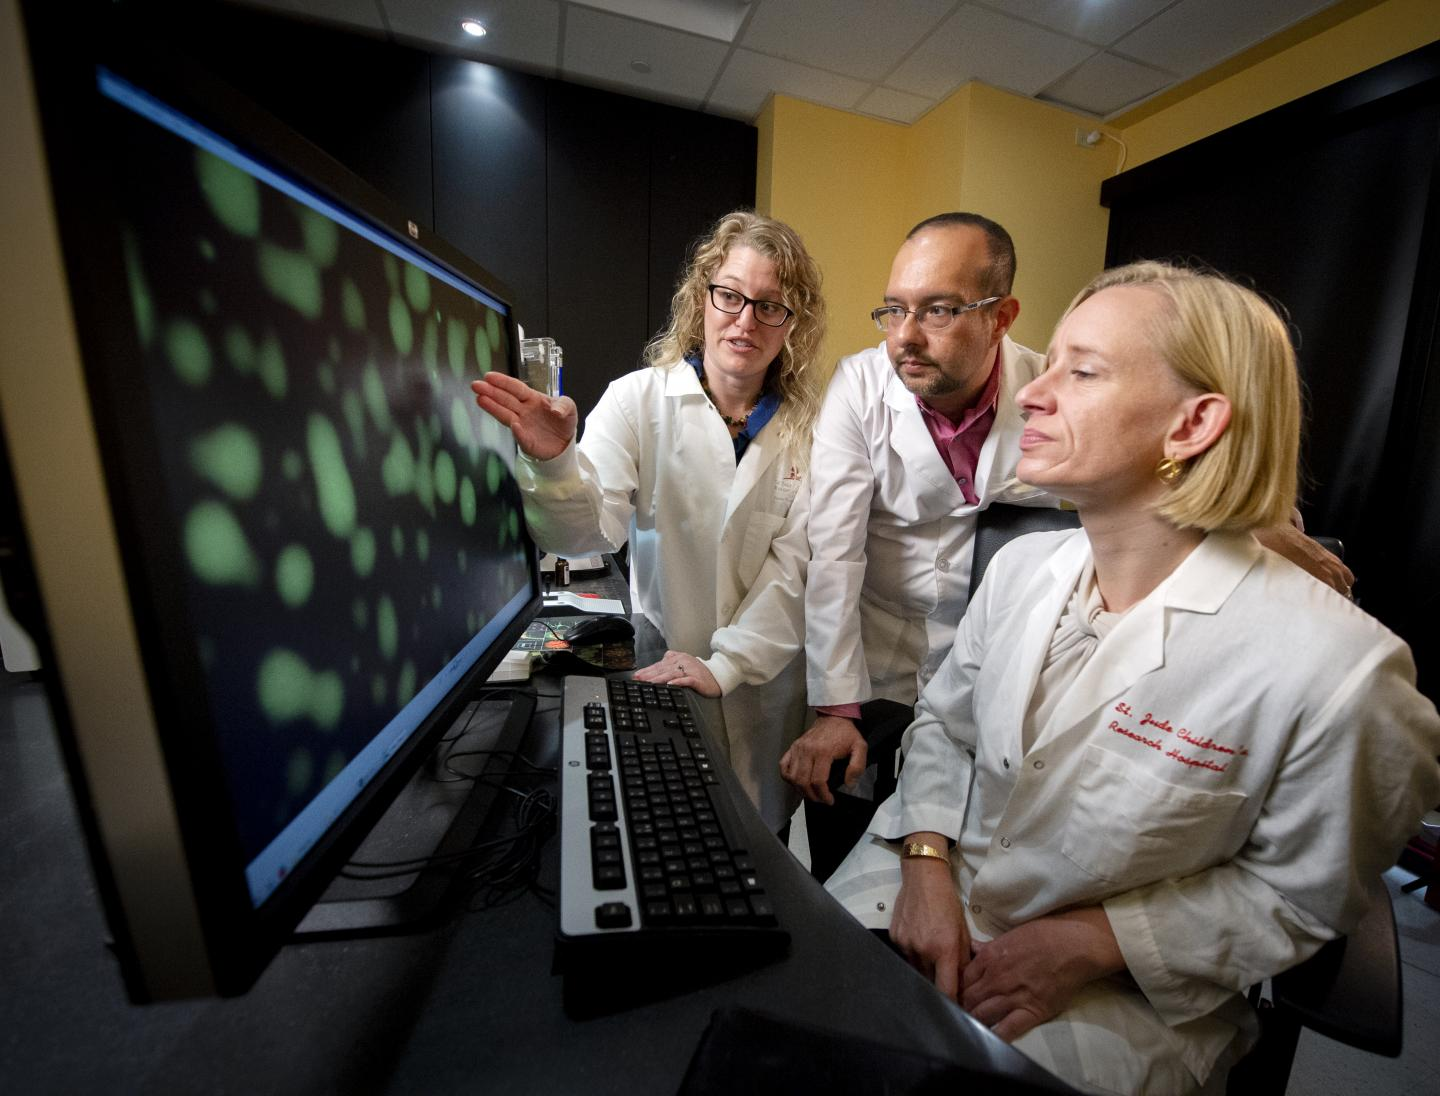 Jill Bouchard, Ph.D., Joel Otero, Ph.D., and Tanja Mittag, Ph.D. were studying SPOP initially to better understand its role in the mechanism of protein degradation, but the investigation became more complicated. / Credit: St. Jude Children's Research Hospital / Ann Margaret Hedges